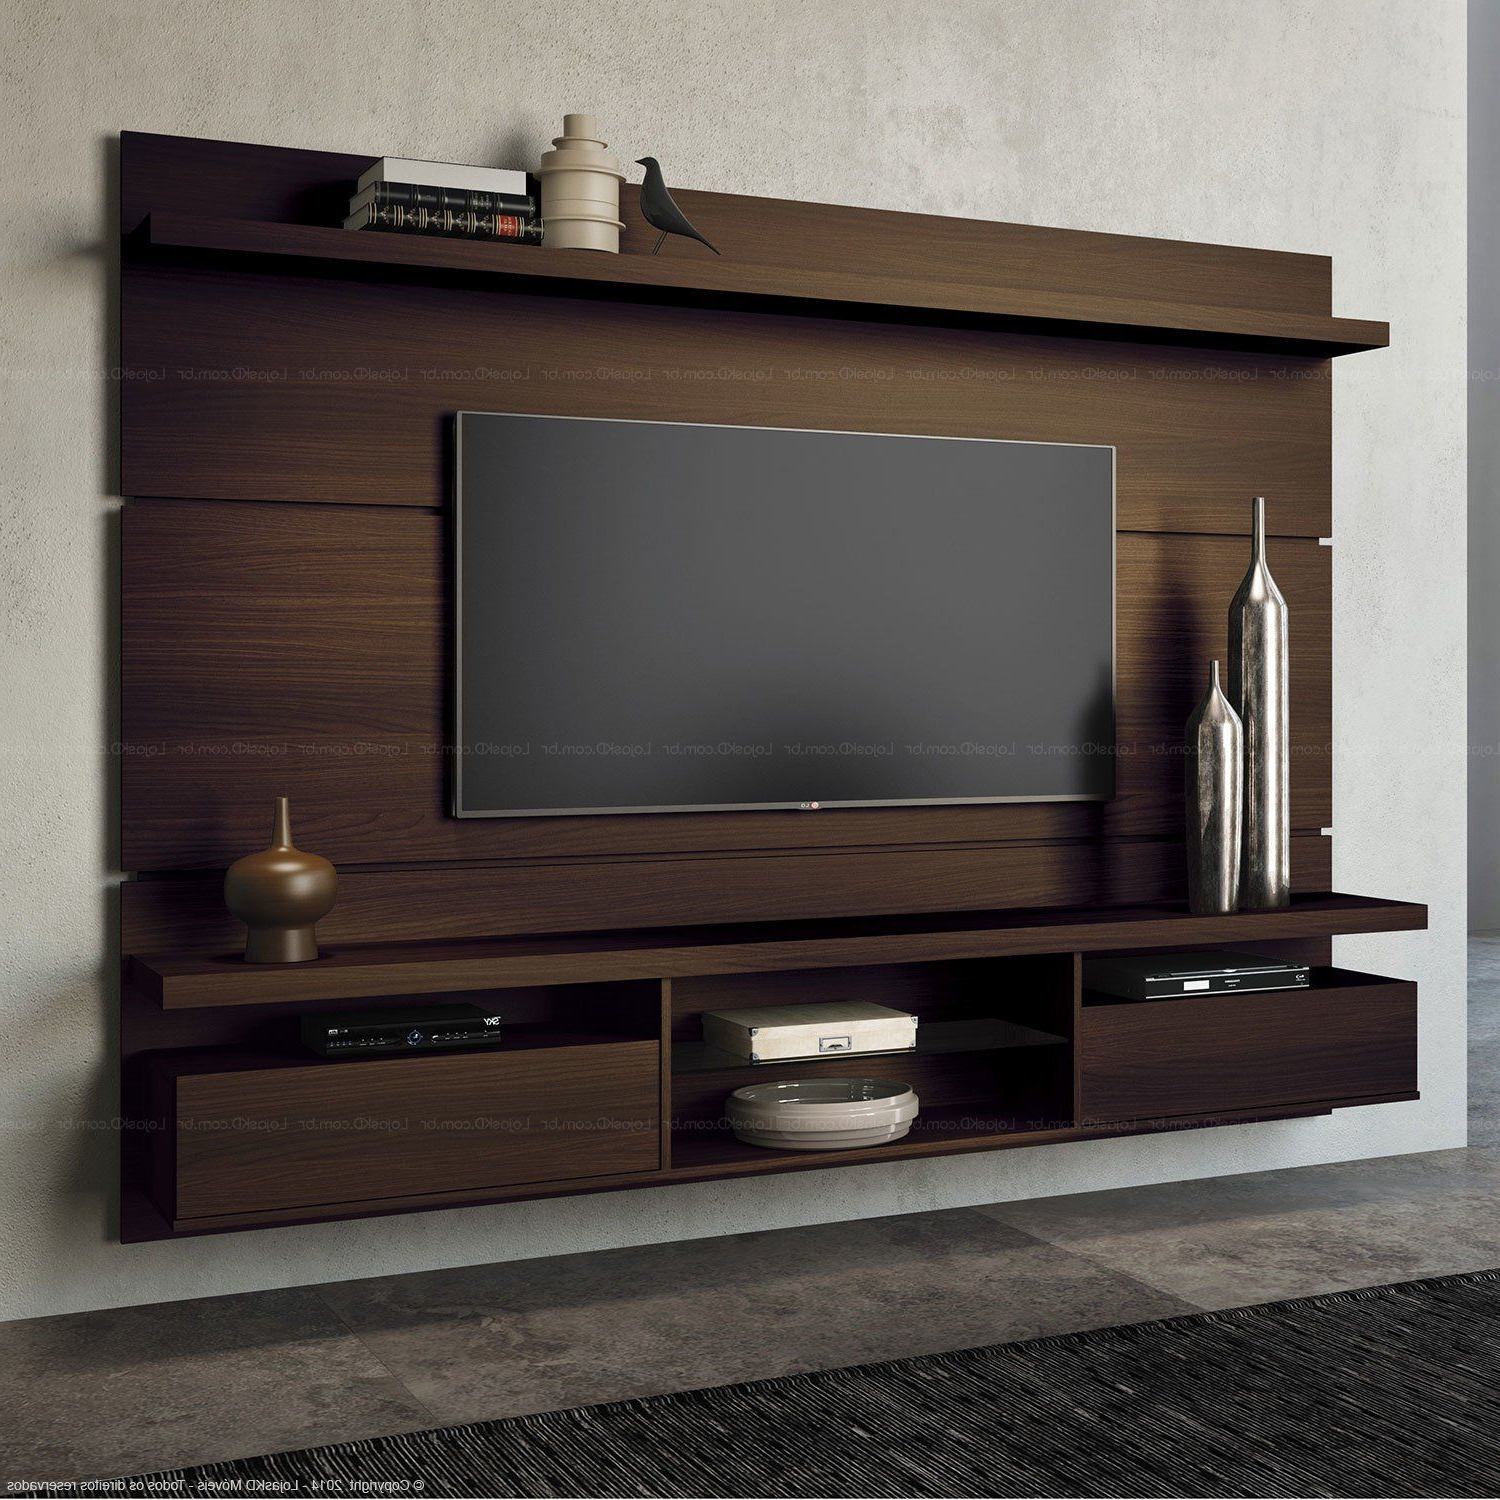 Home Suspenso Para Tv Até 60 Polegadas Livin 165 X 220 X 35 With Kilian Black 60 Inch Tv Stands (View 7 of 20)